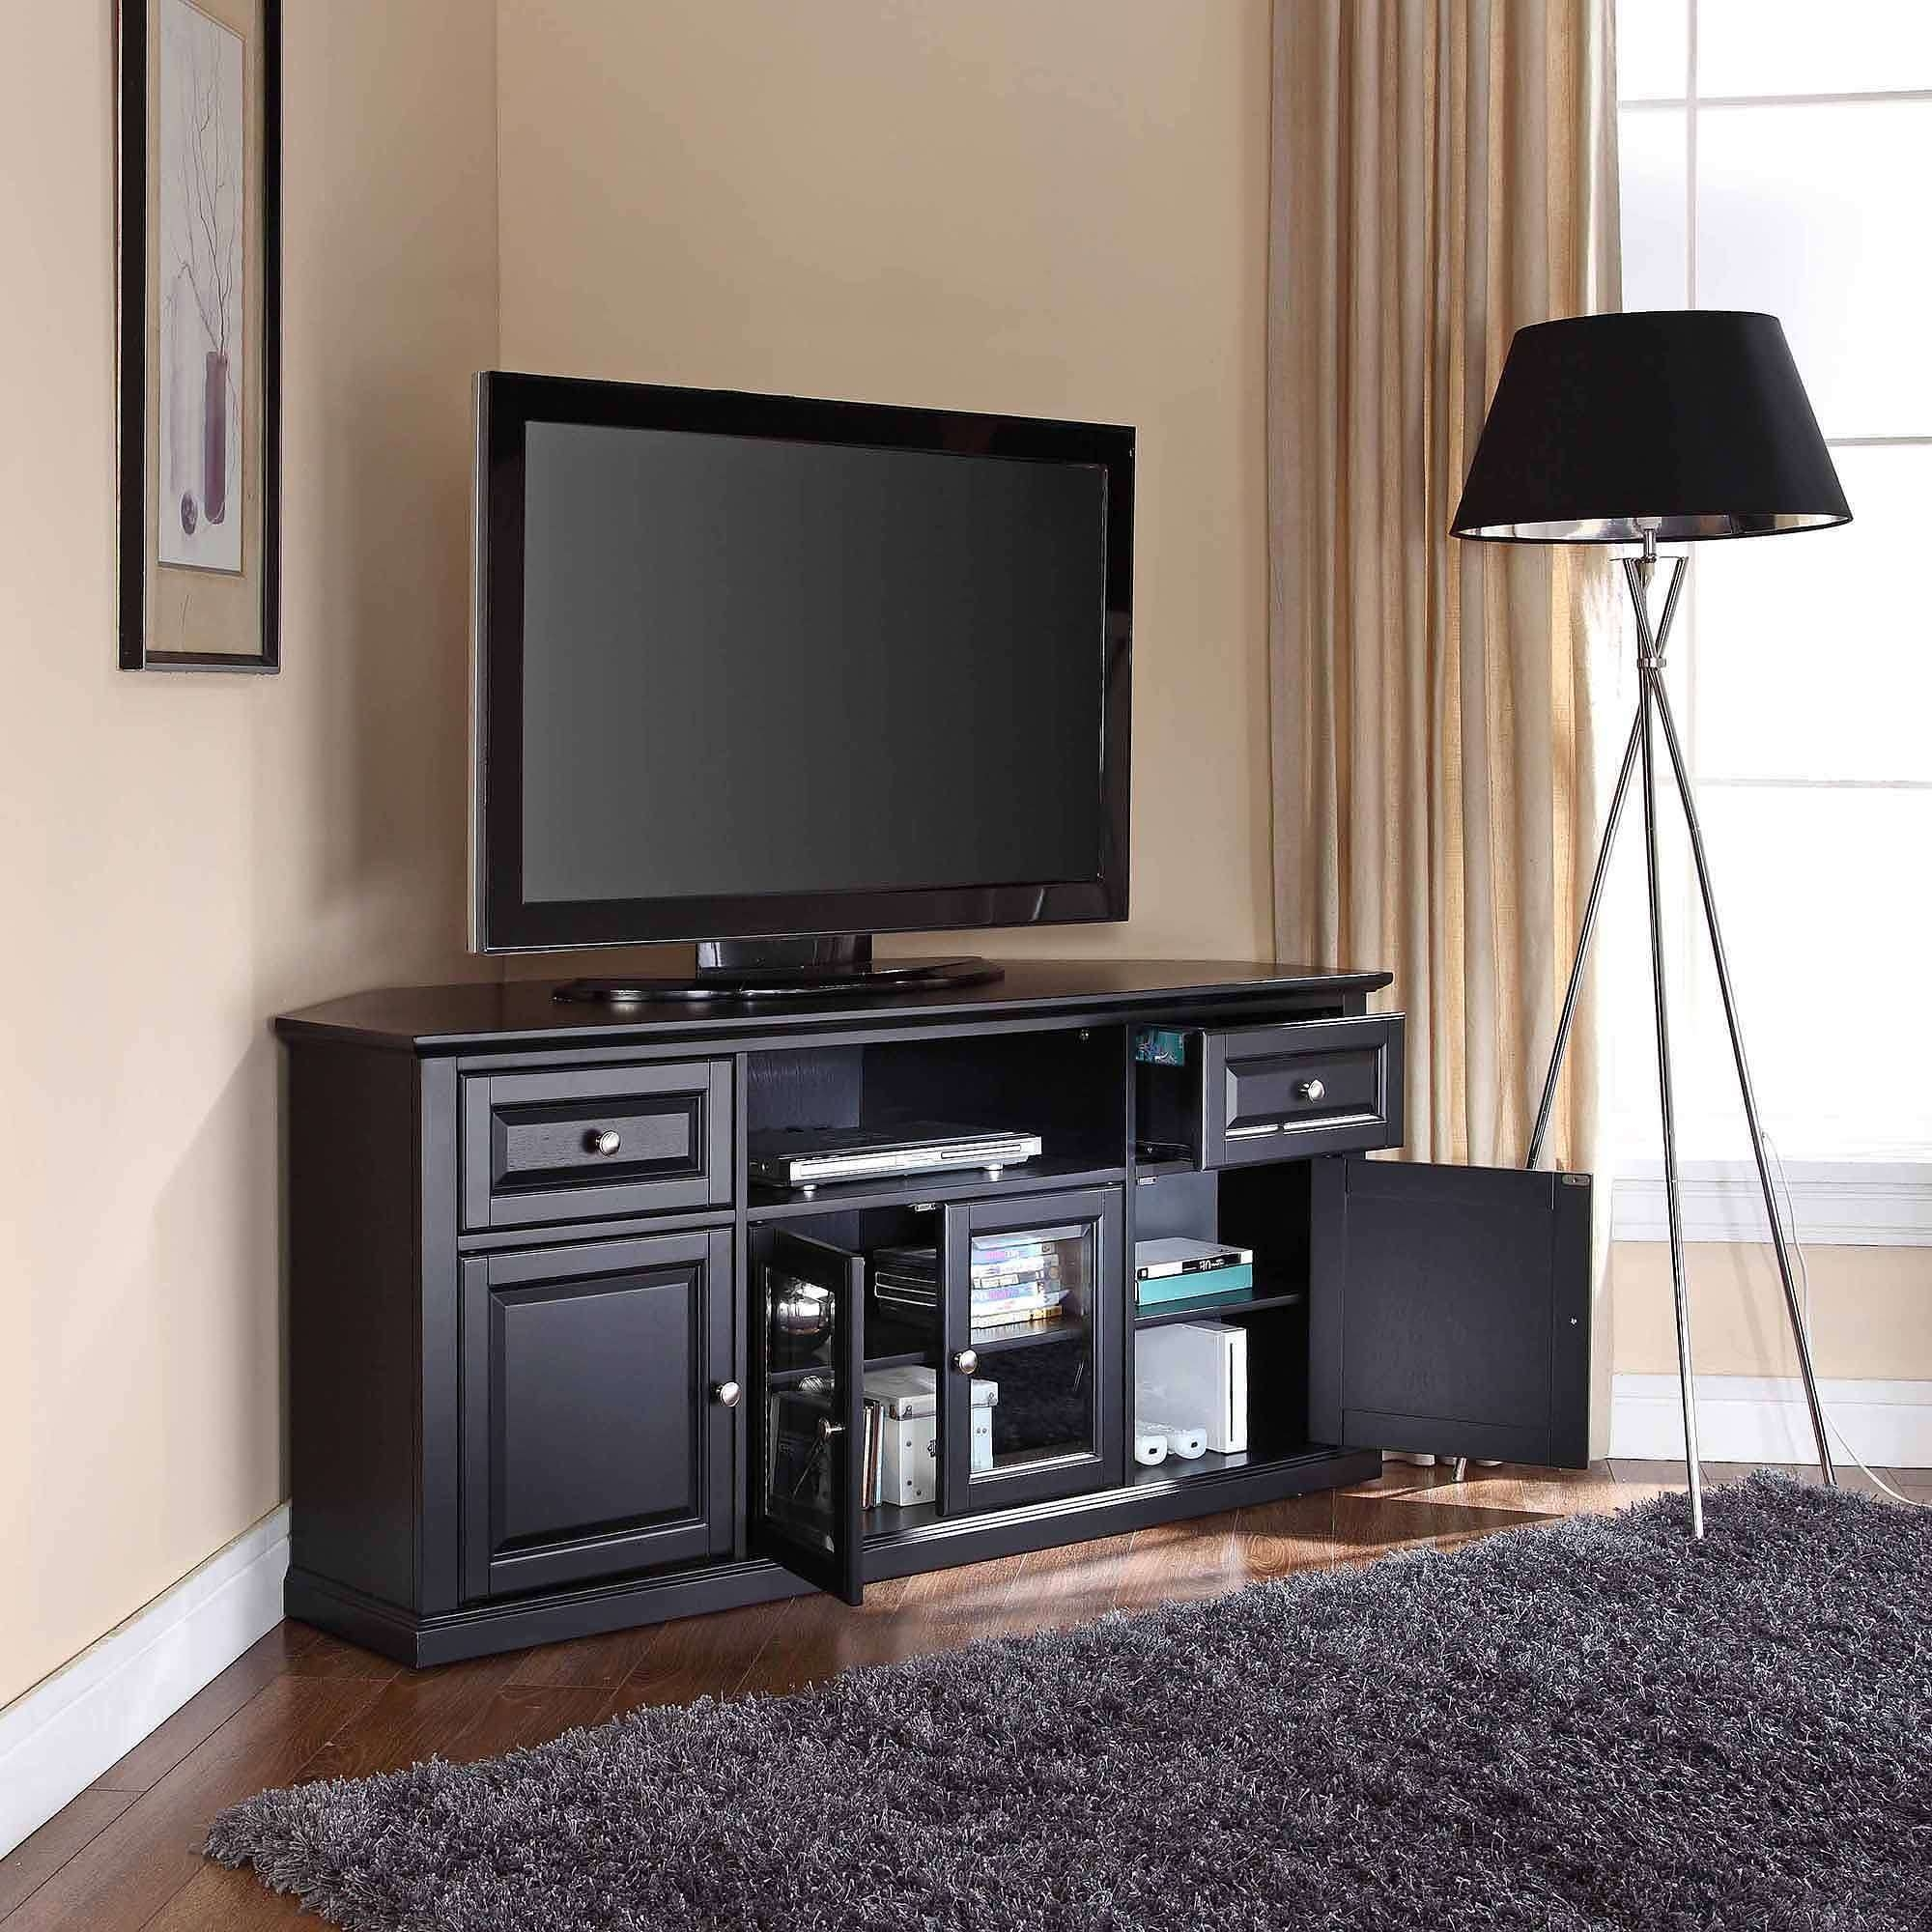 Tv Stand : Formidable Corner Tv Stand Image Inspirations Electric With Regard To Low Corner Tv Cabinets (View 9 of 20)